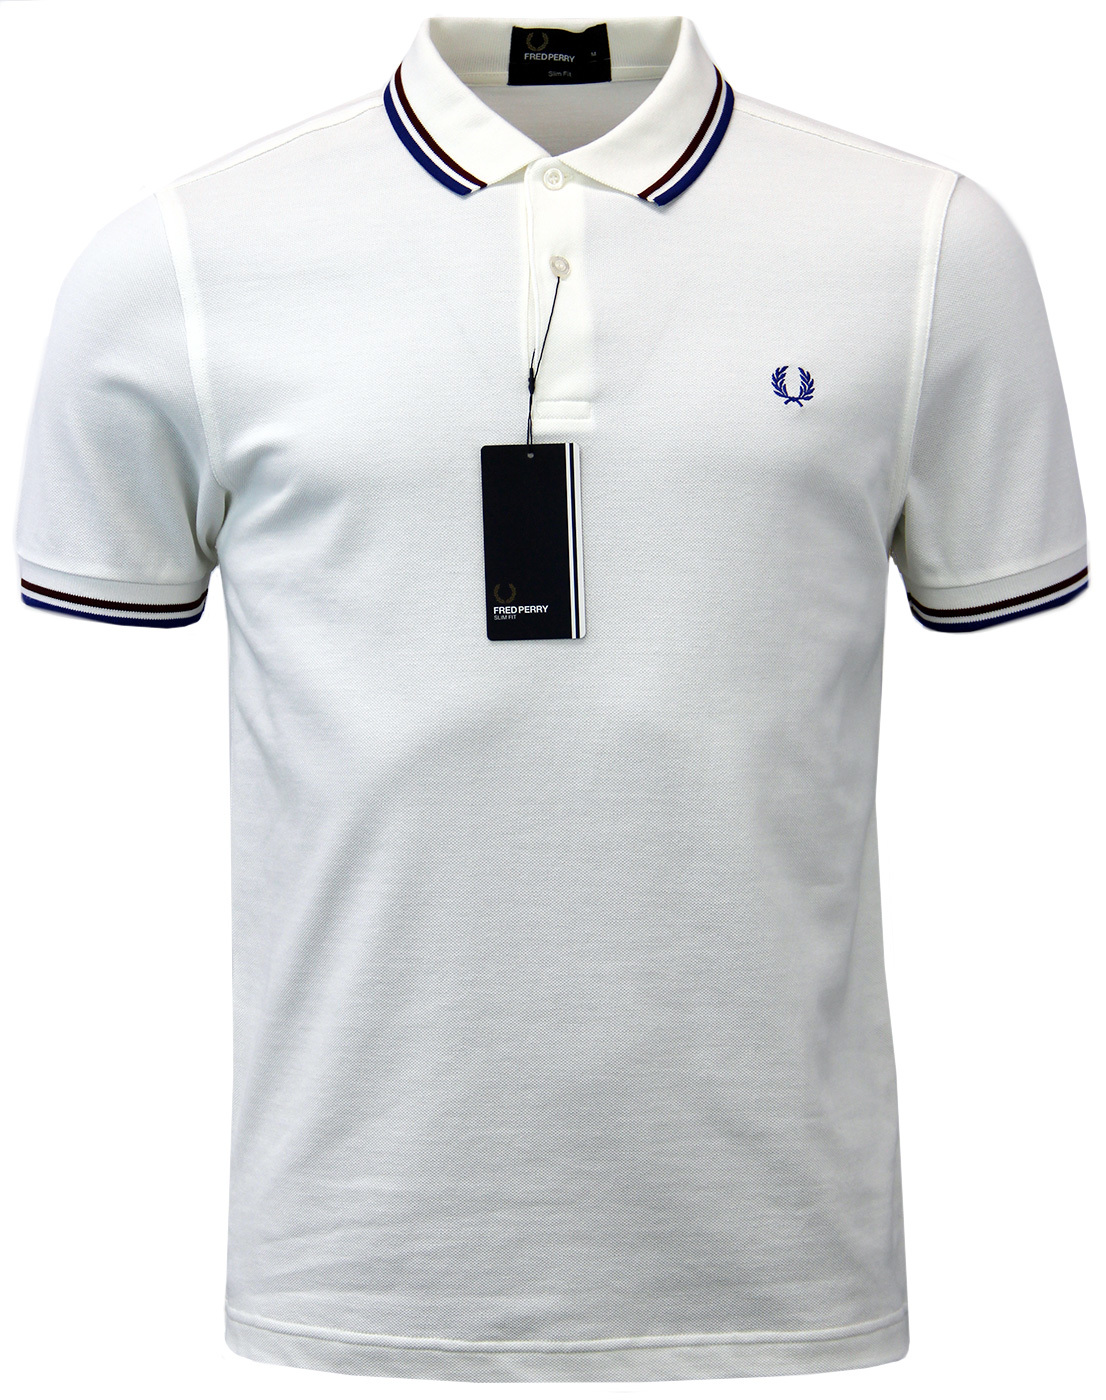 FRED PERRY M3600 Mod Twin Tipped Polo Shirt - Snow